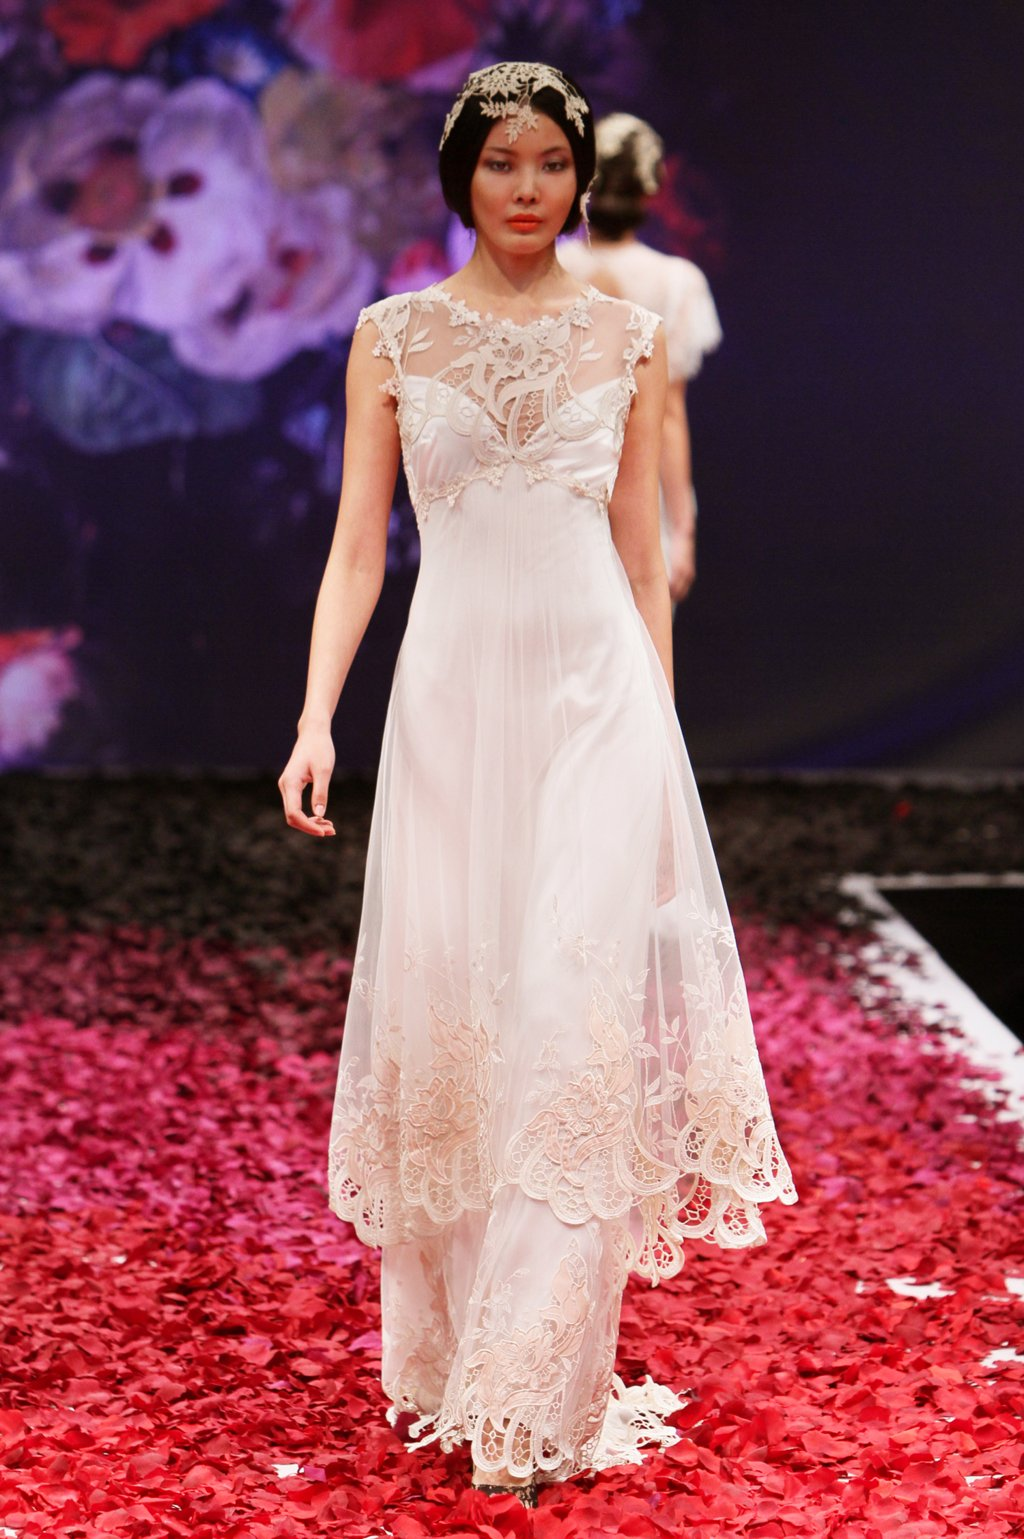 Sonata-wedding-dress-by-claire-pettibone-2014-still-life-bridal-collection.full